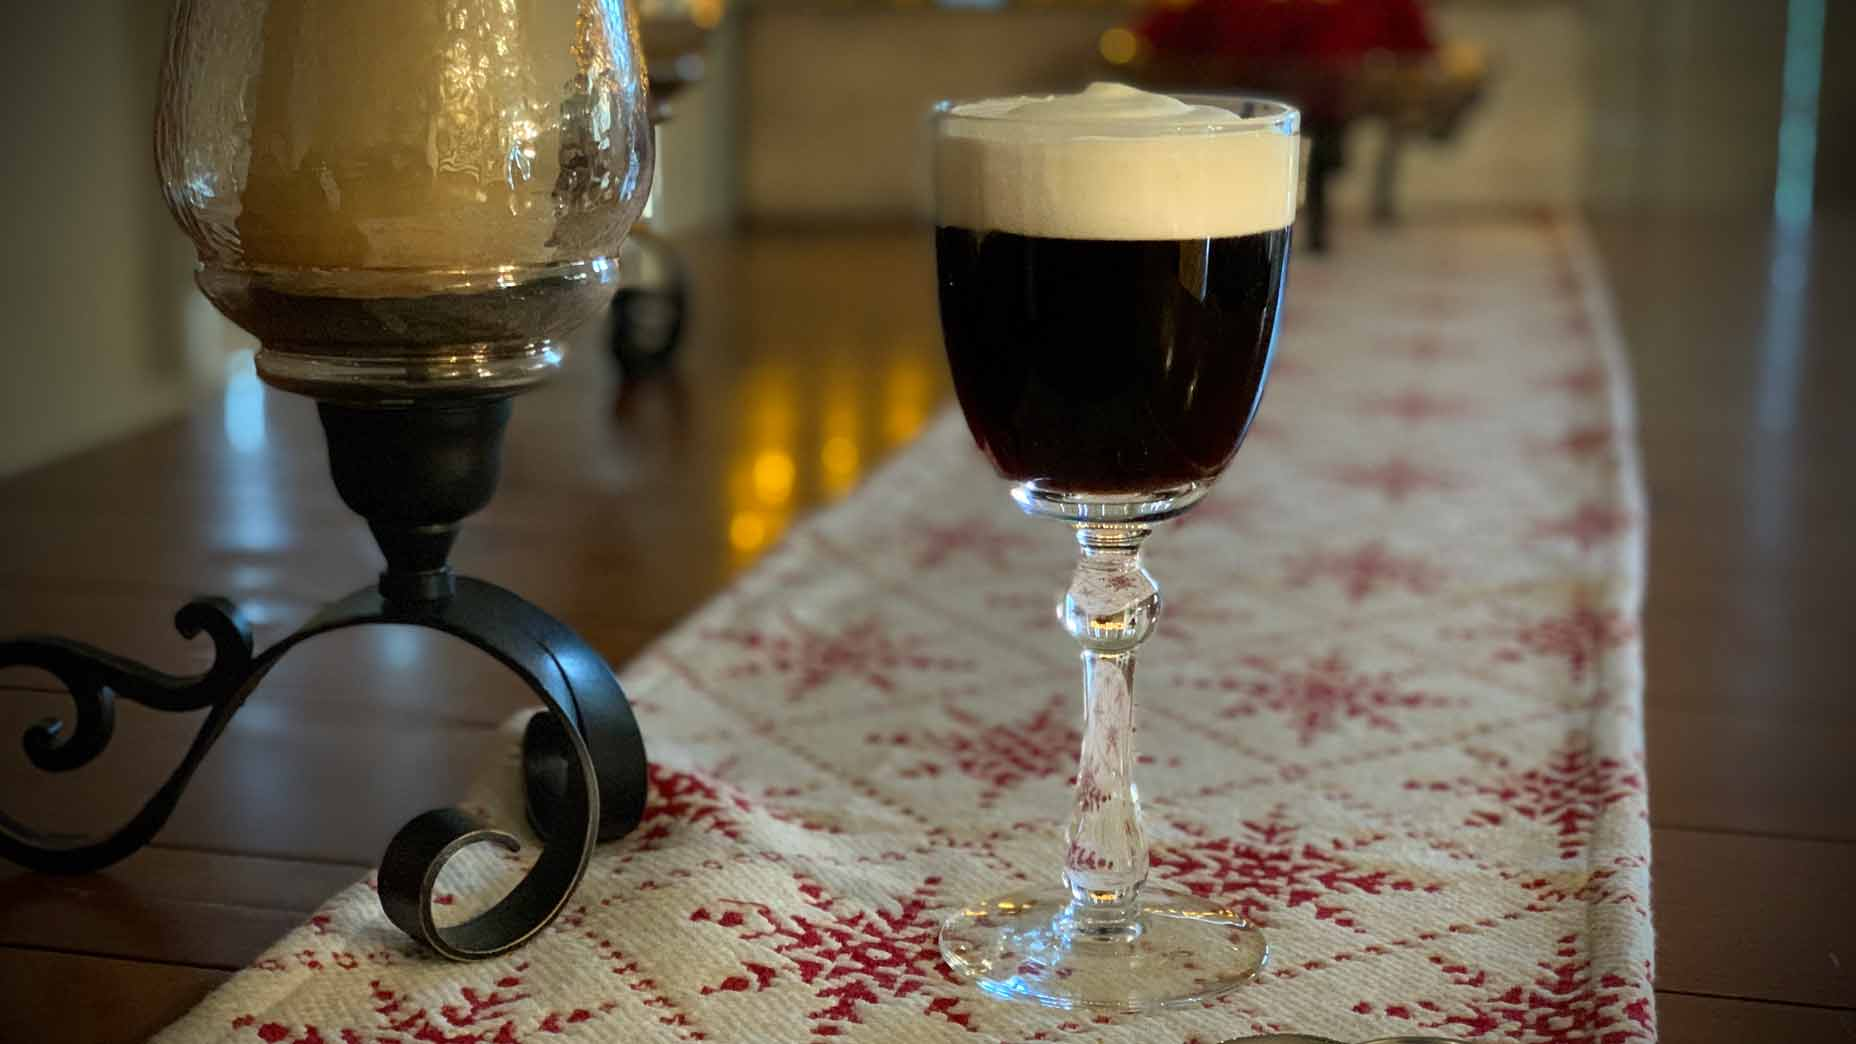 How to make the perfect Irish coffee, according to a golf club chef